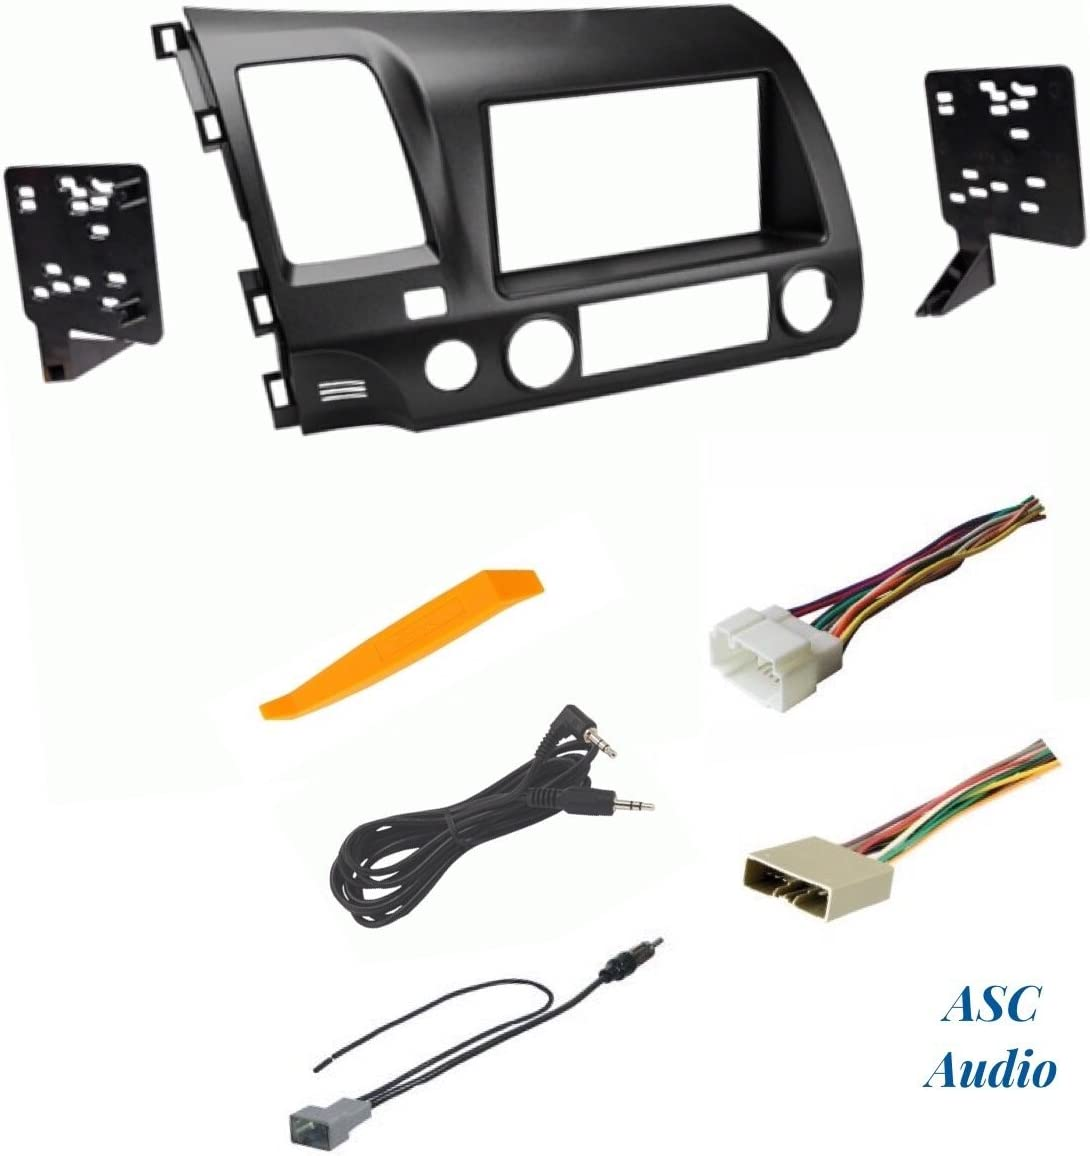 ASC Audio Car Stereo Dash Install Kit Wire Harness Other and Antenna Adapter for Installing an Aftermarket Double Din Radio for 2007 2008 2009 2010 2011 Honda CRV CR-V No Factory NAV